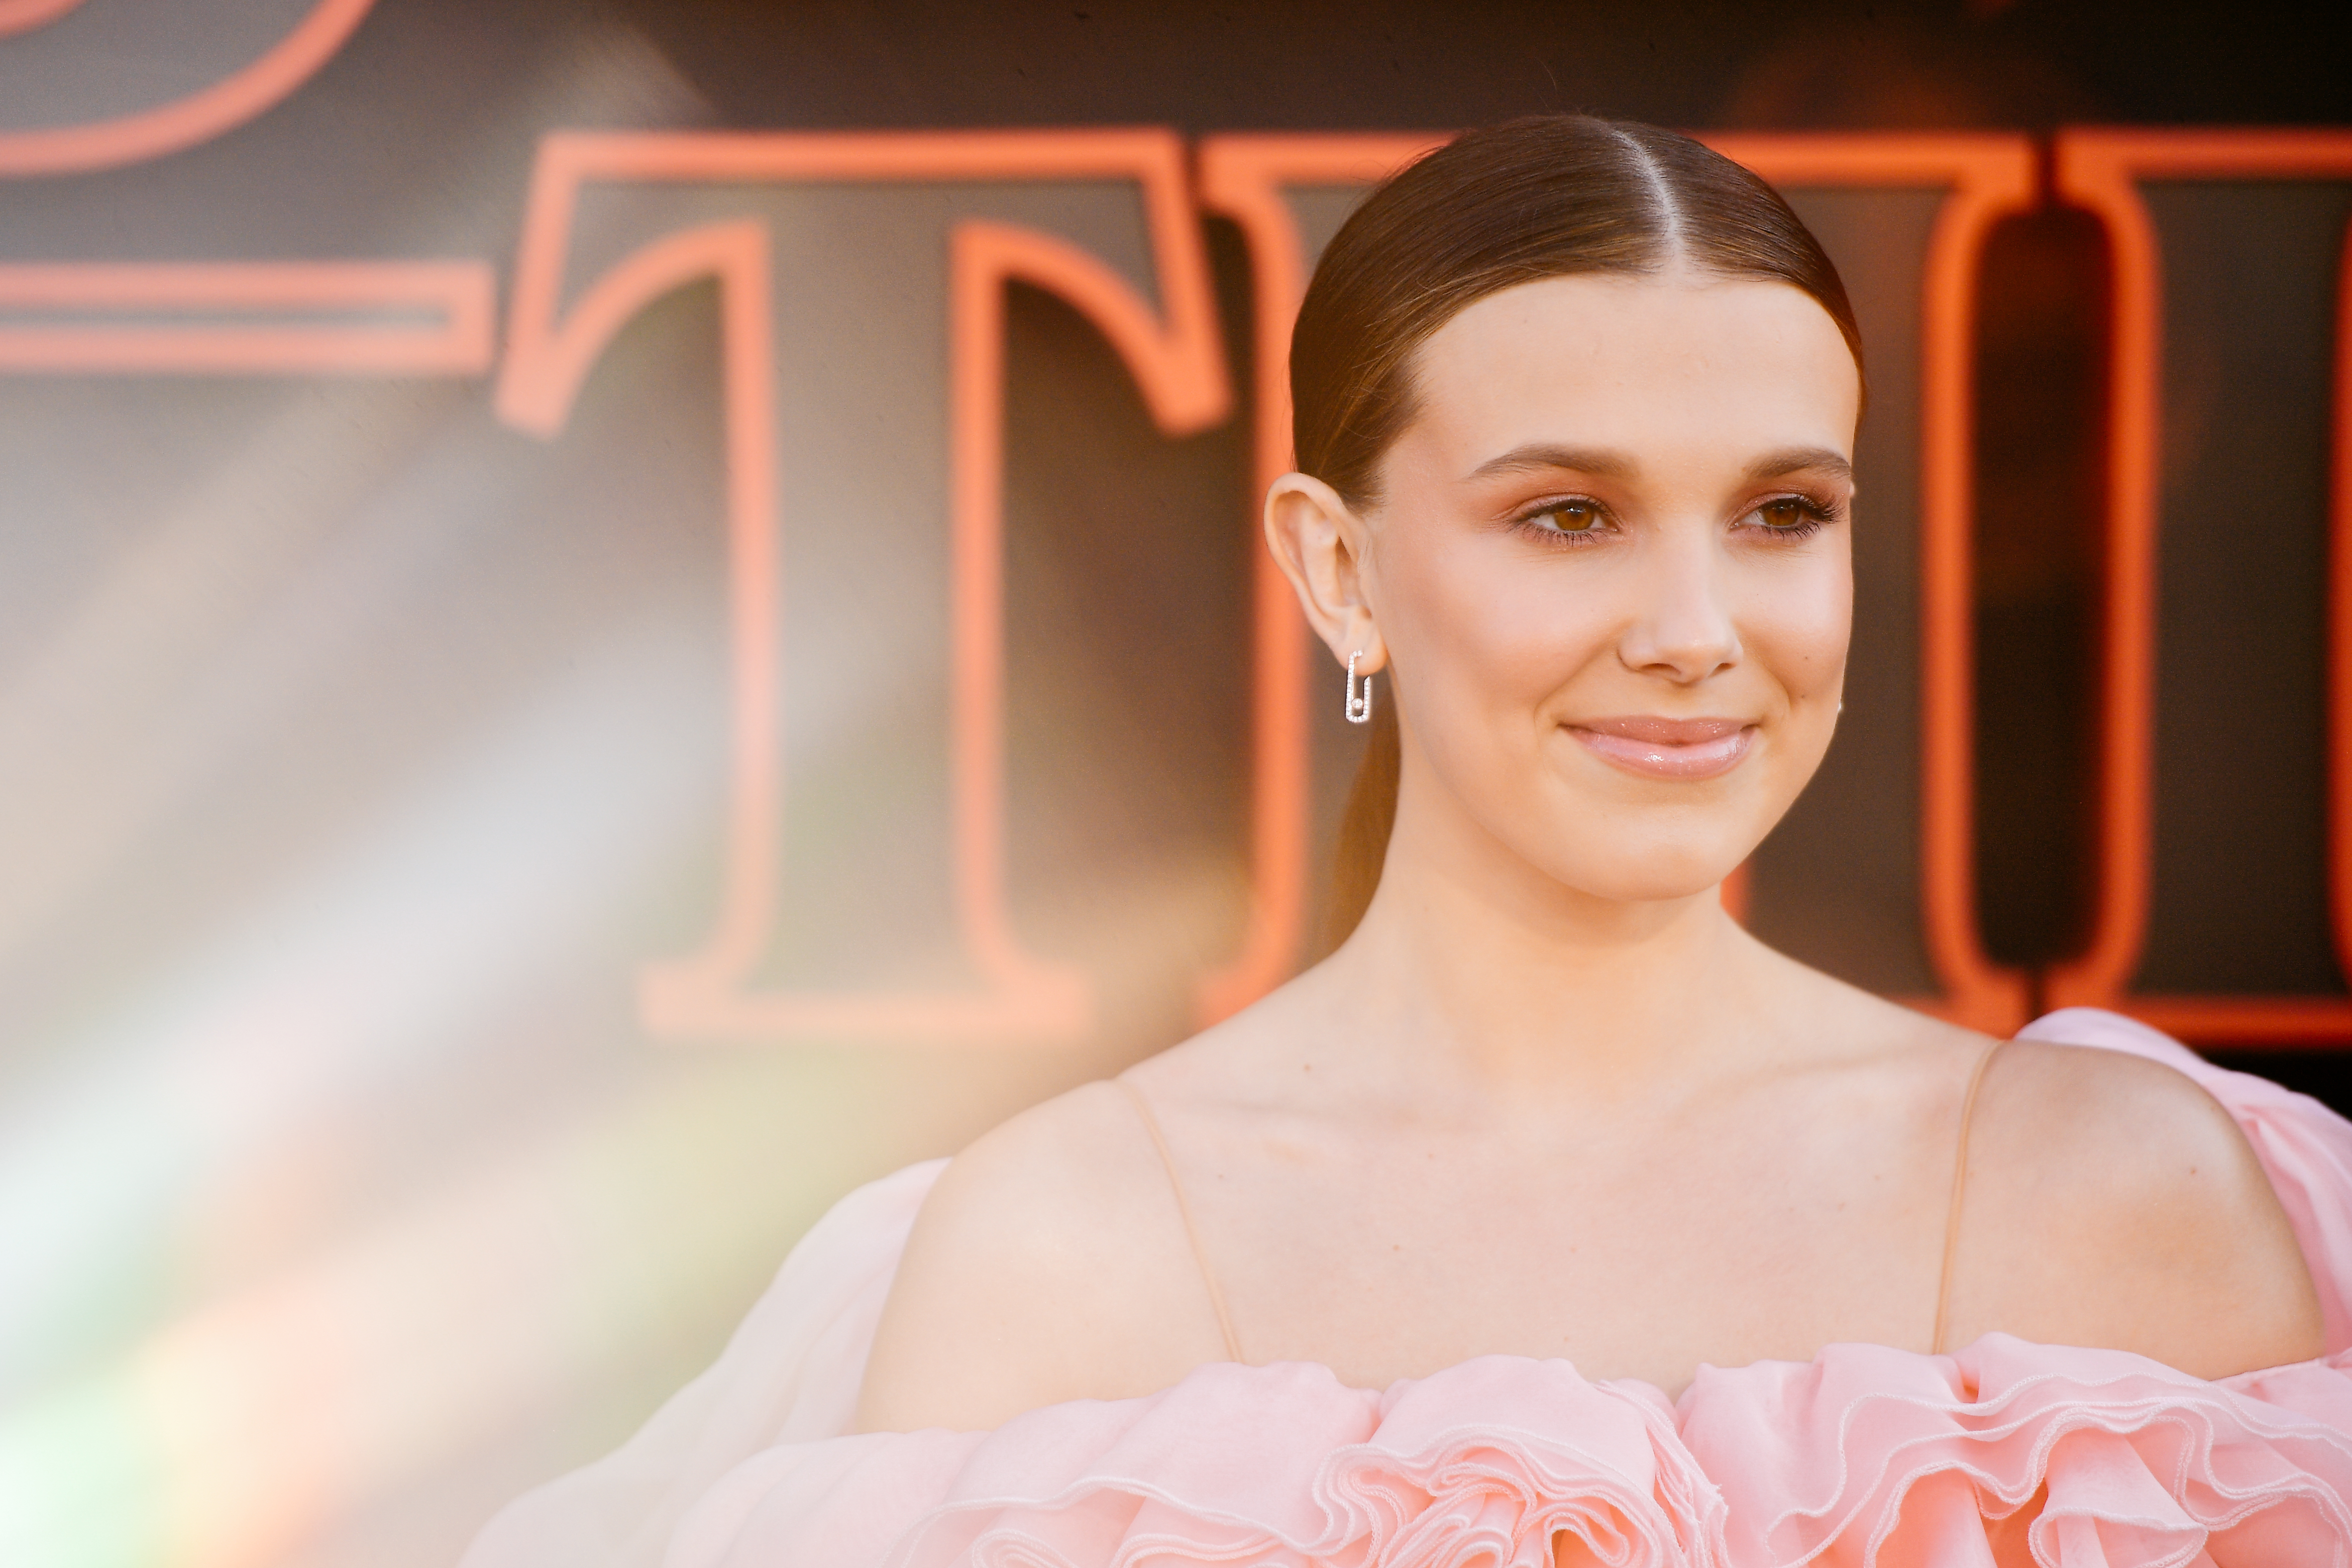 Millie Bobby Brown's Latest Career Move Has Nothing to Do With Acting